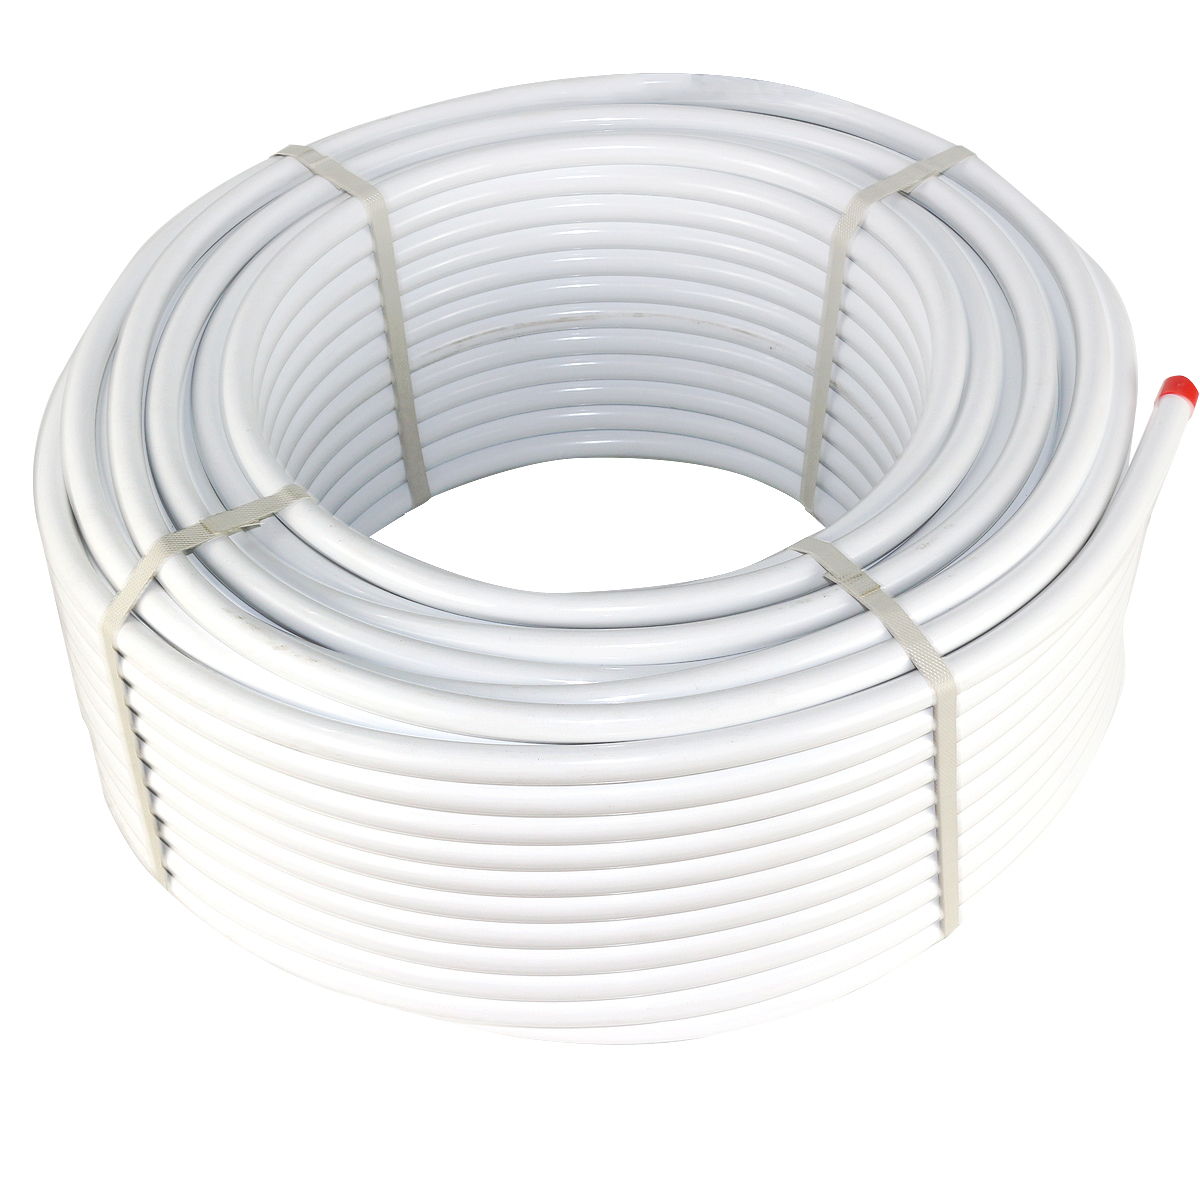 Pert-Al-Pert Multilayer Pipe 16 × 2 x 300 m